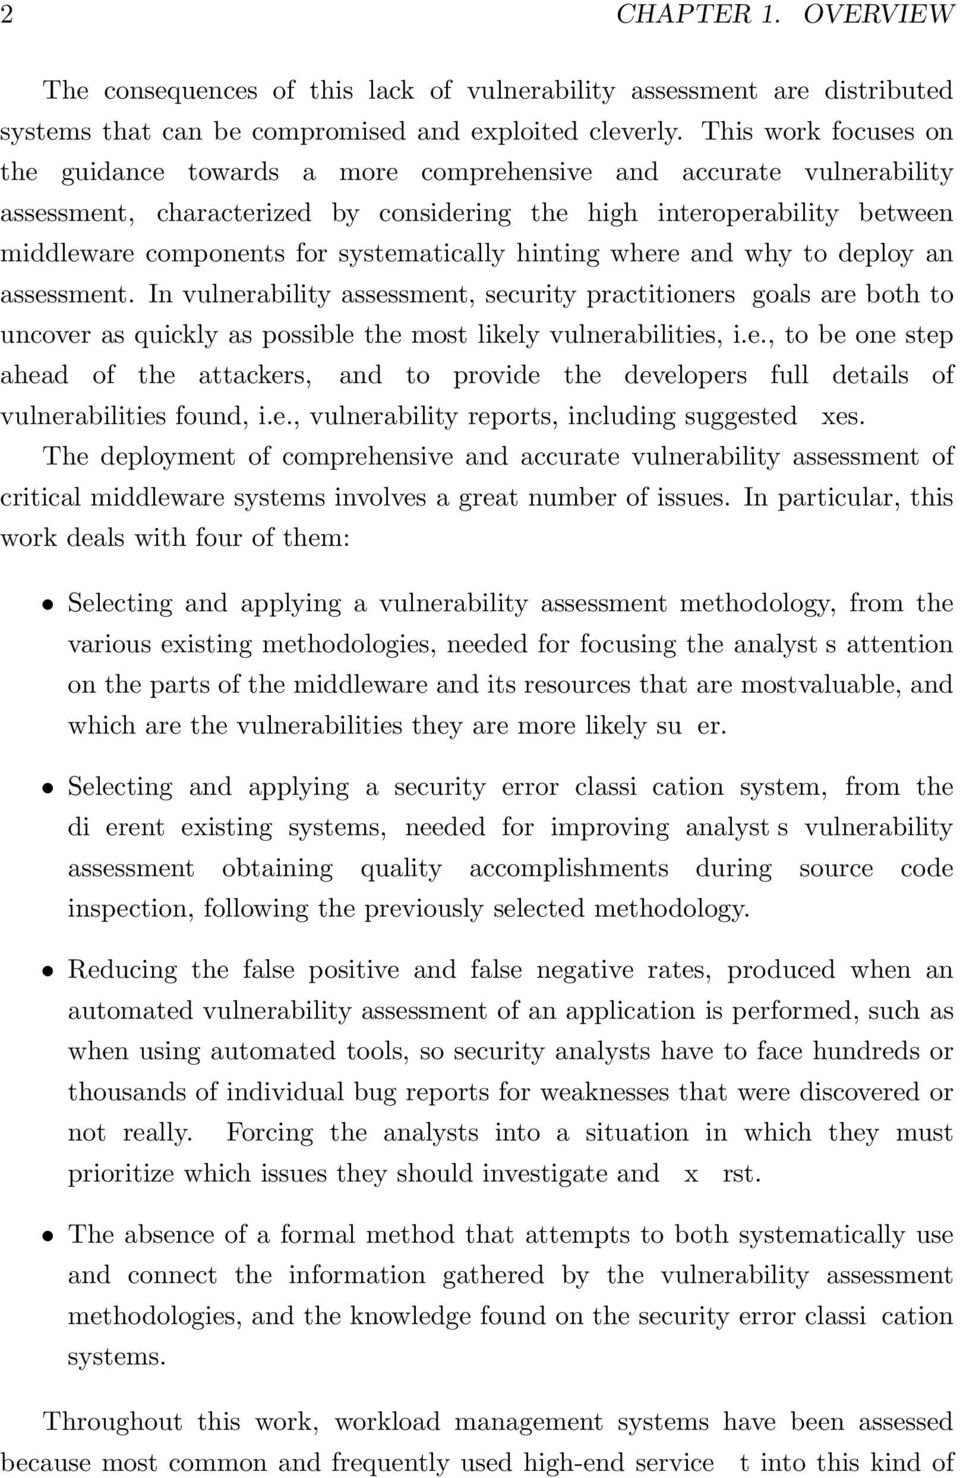 systematically hinting where and why to deploy an assessment. In vulnerability assessment, security practitioners' goals are both to uncover as quickly as possible the most likely vulnerabilities, i.